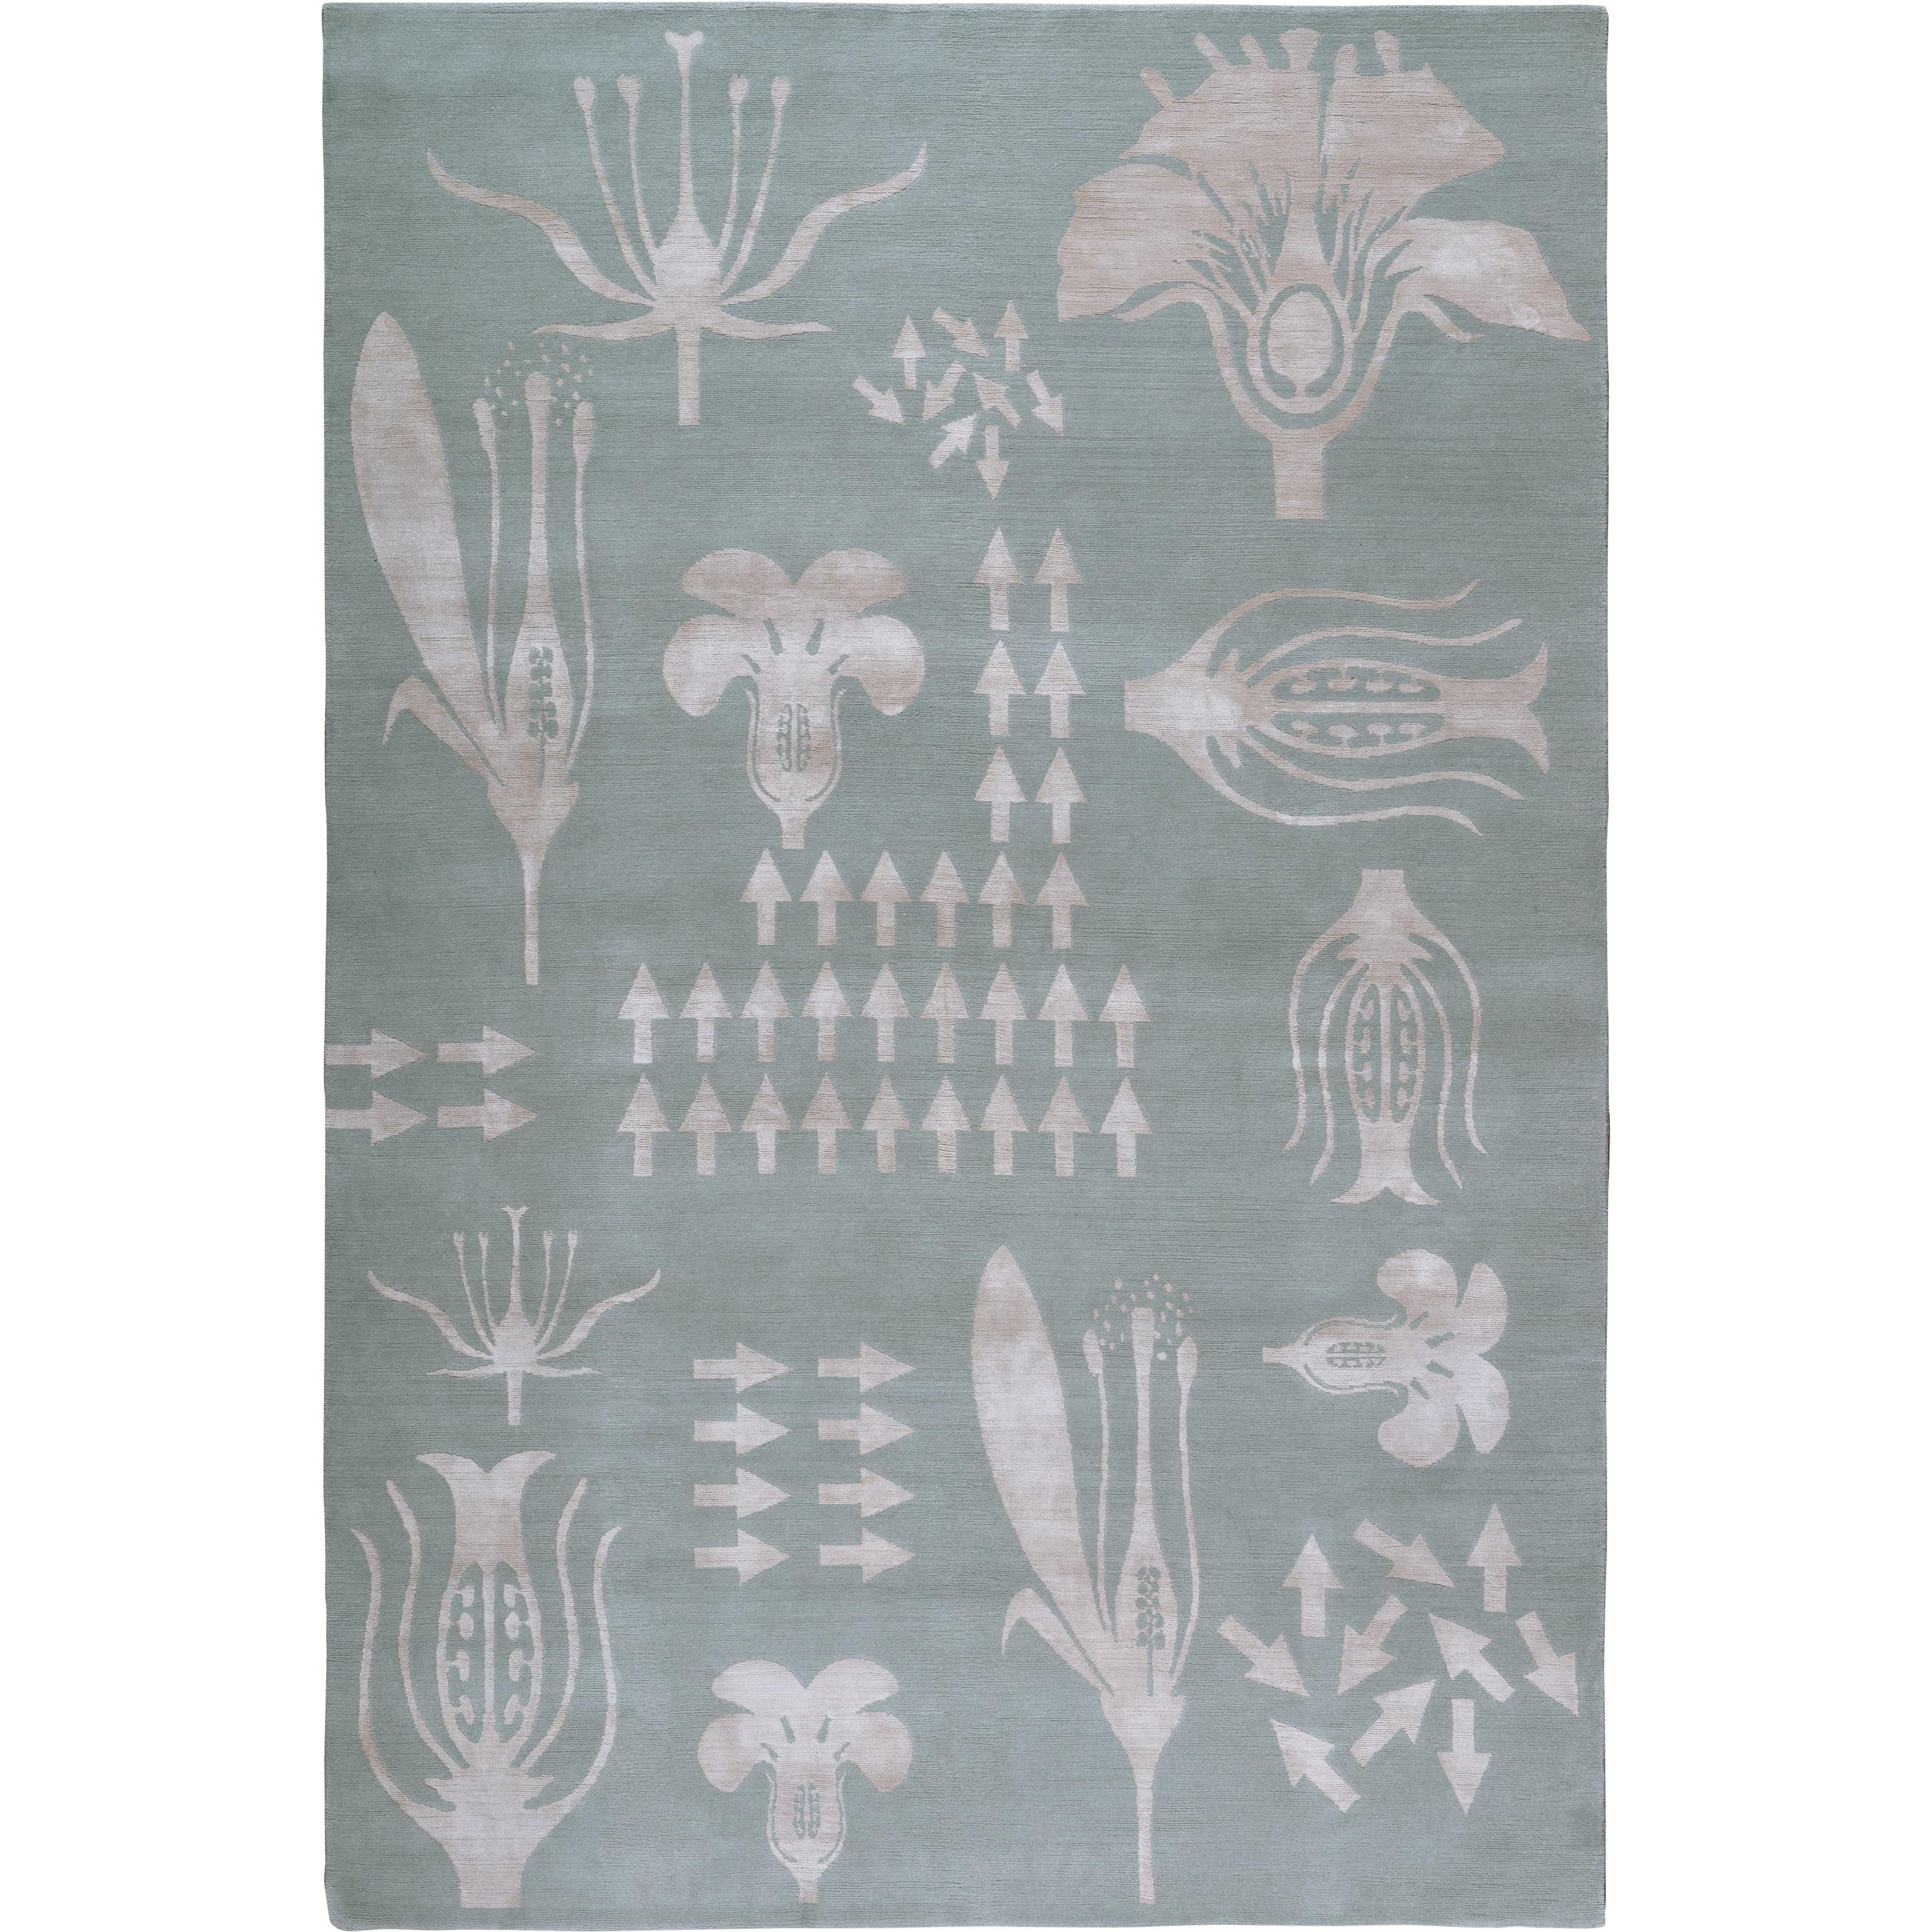 Botanical Anatomy Grey Hand-Knotted 10x8 Rug in Wool & Silk by Christopher Kane